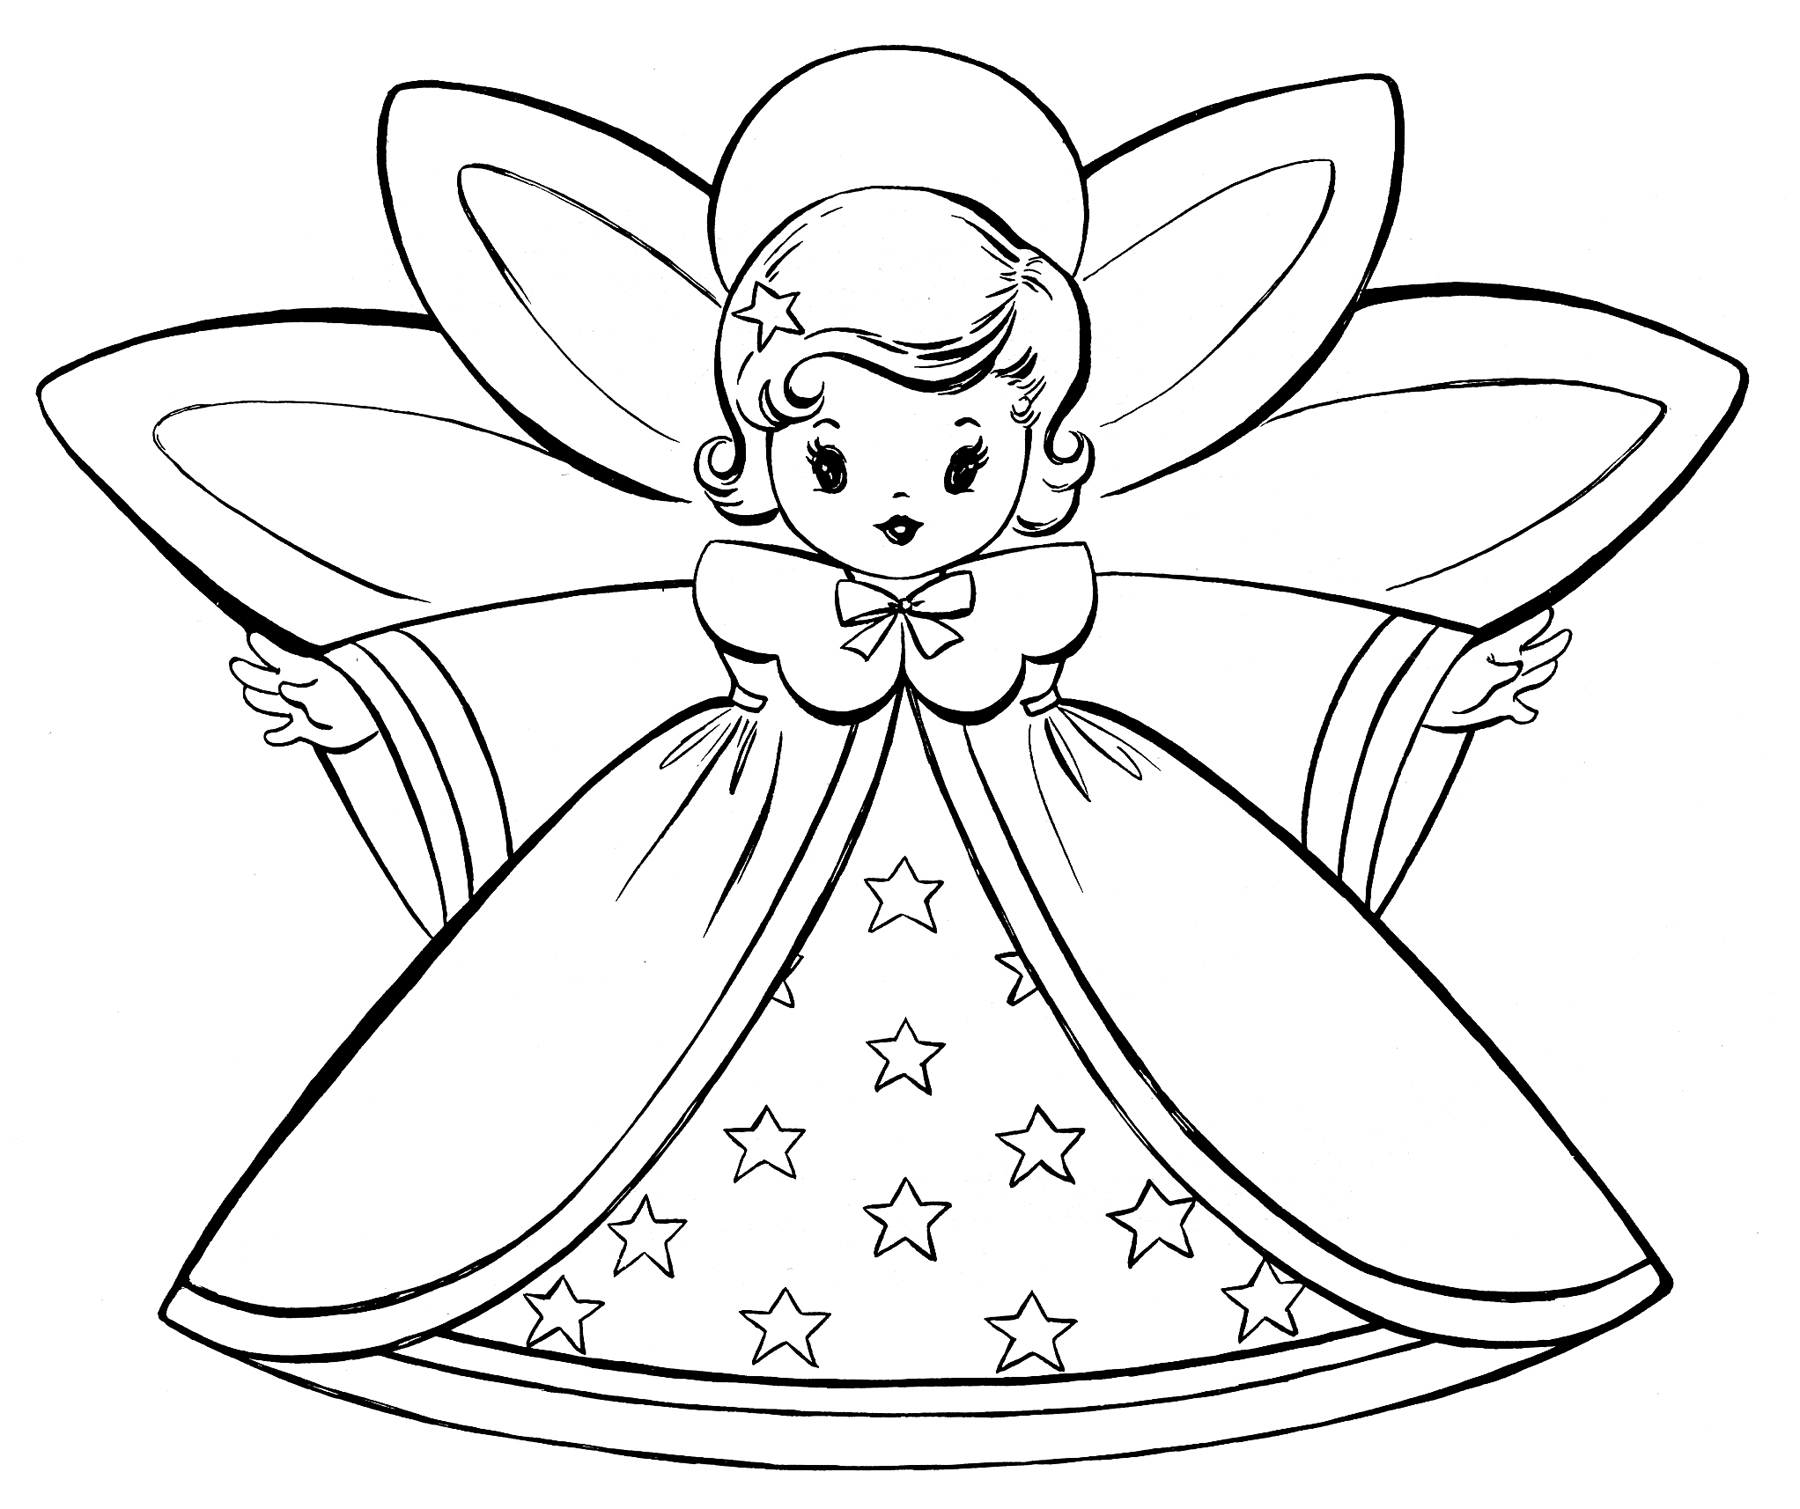 Christmas Coloring Free Printable Pages With Retro Angels The Graphics Fairy